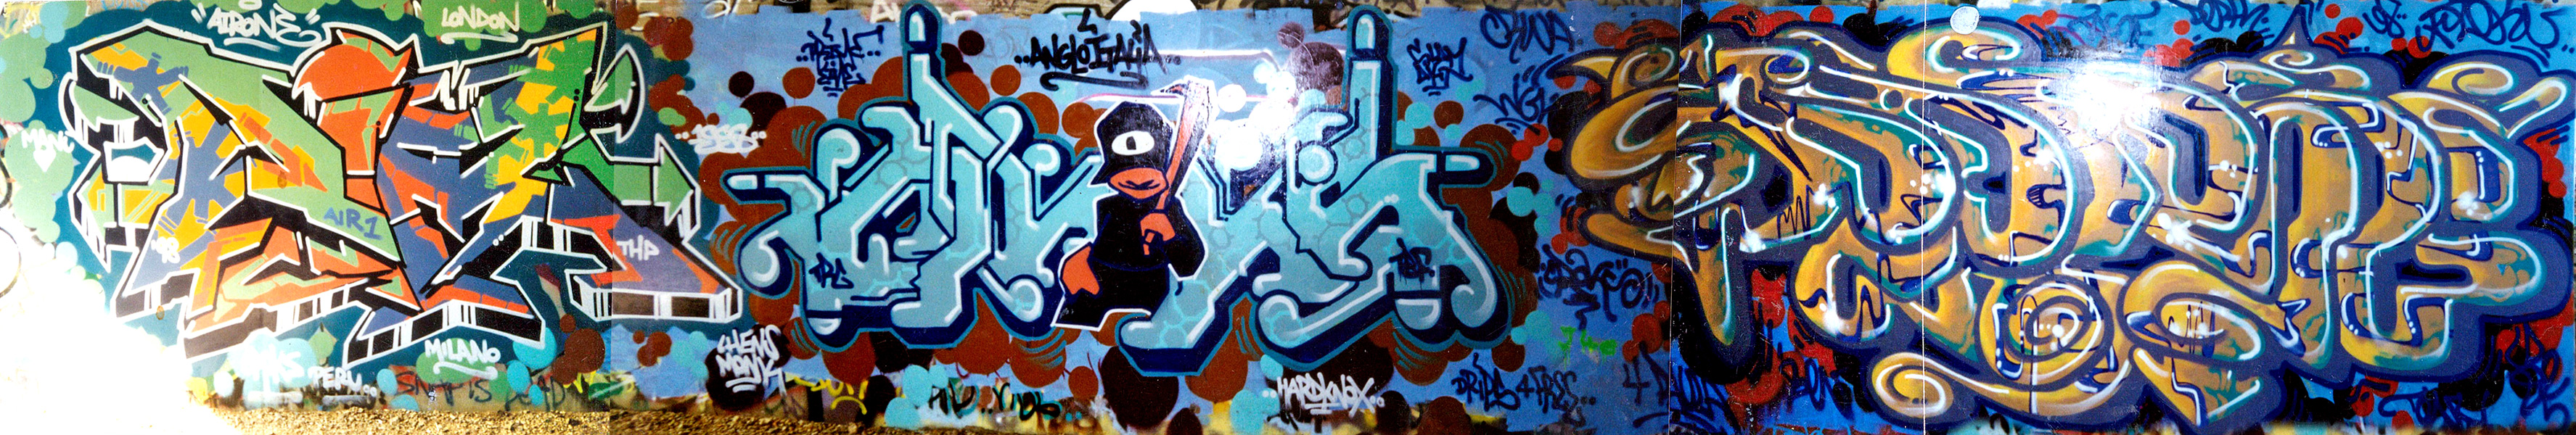 Airone Croks Persue - London 1998